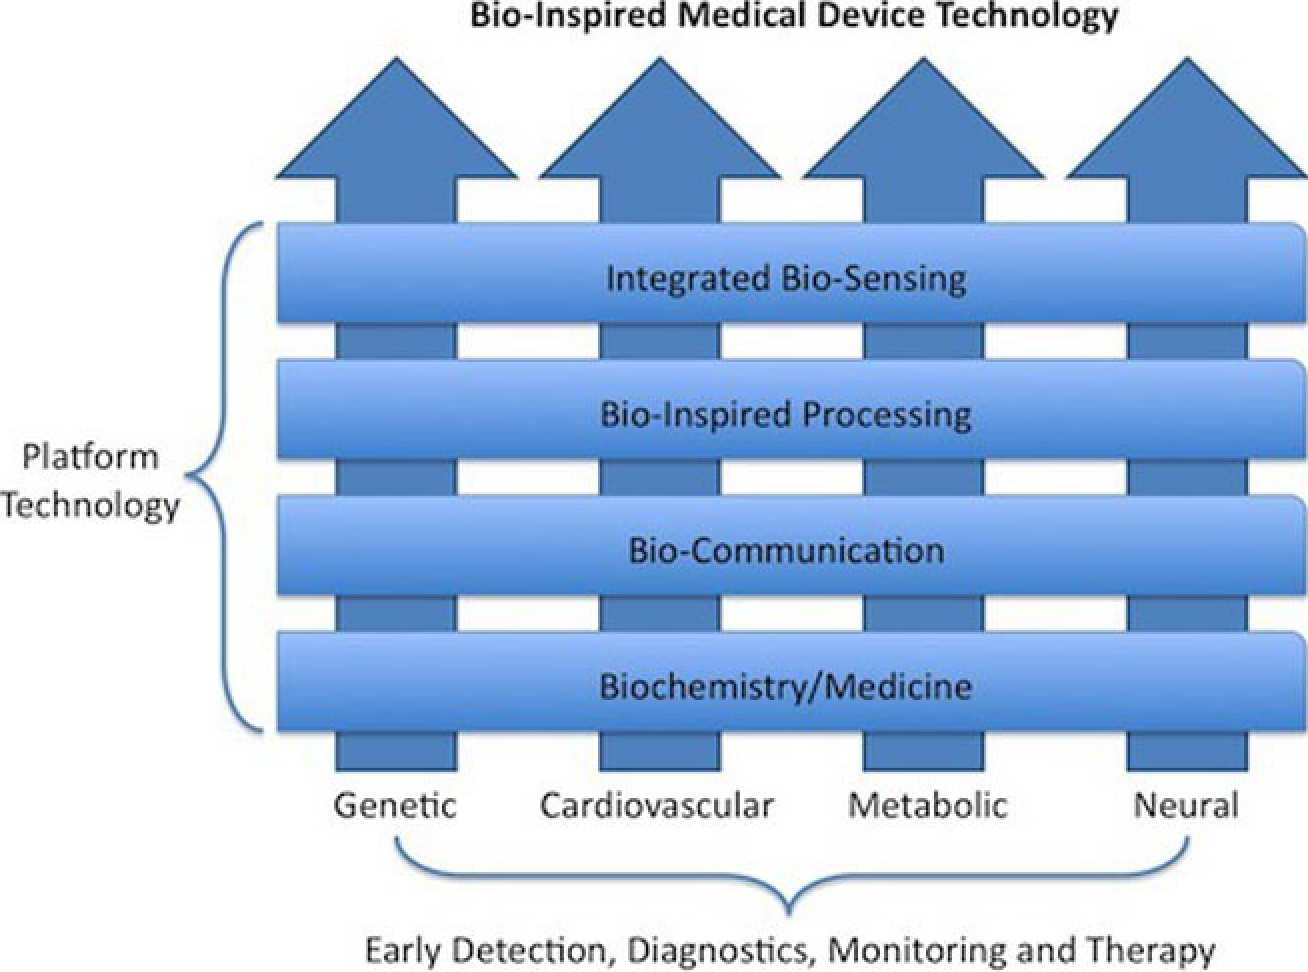 The diagram illustrates how the intersections between the enabling technologies and application domains have defined research projects. We plan to widen the applications of the technology to encompass other disease areas as the technology platforms become developed.